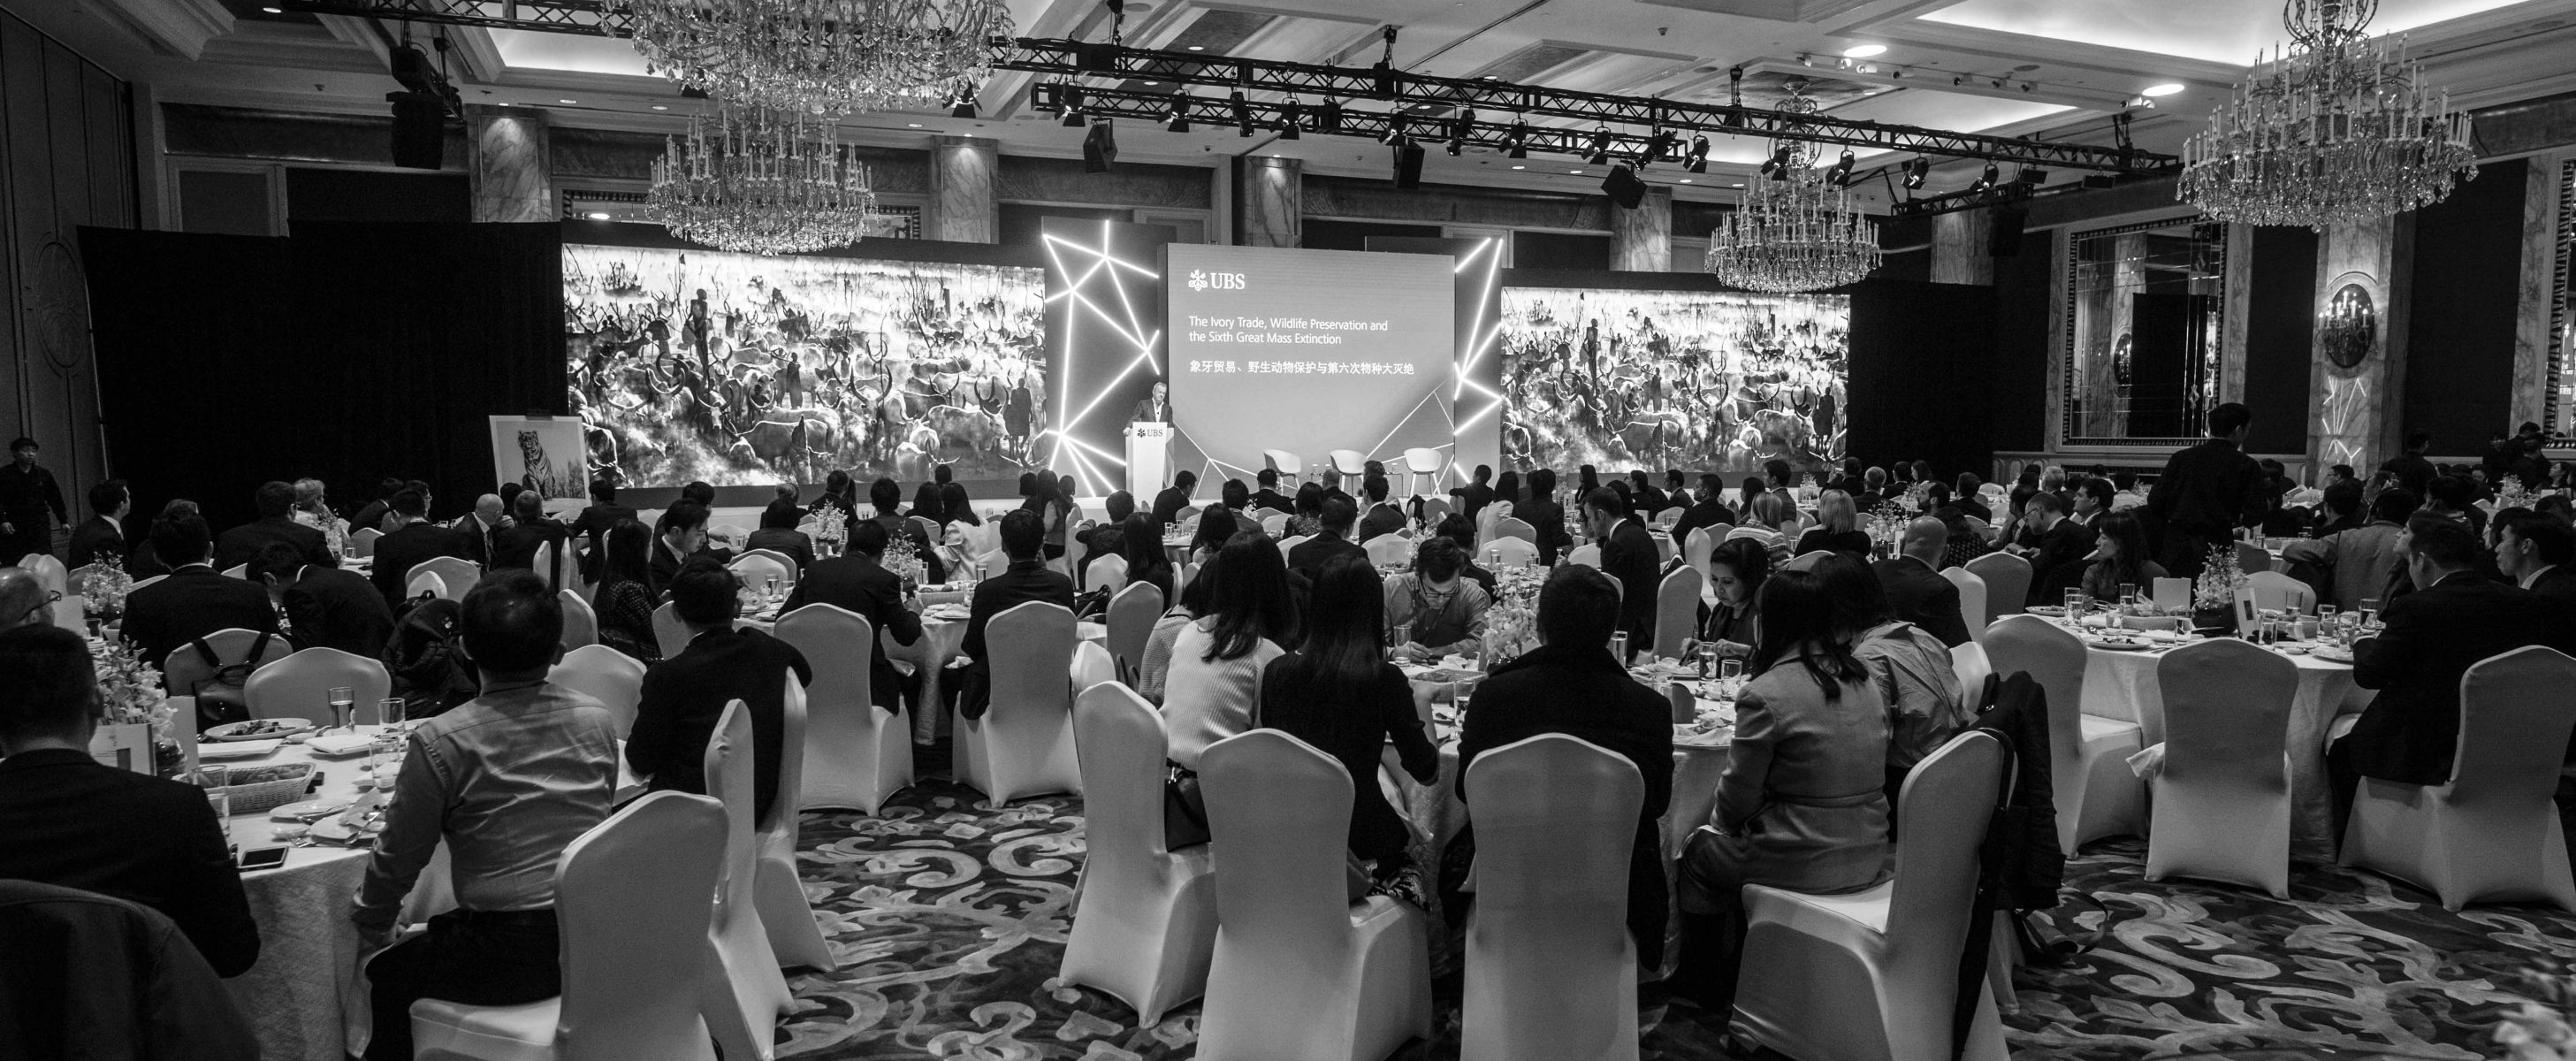 UBS China Conference